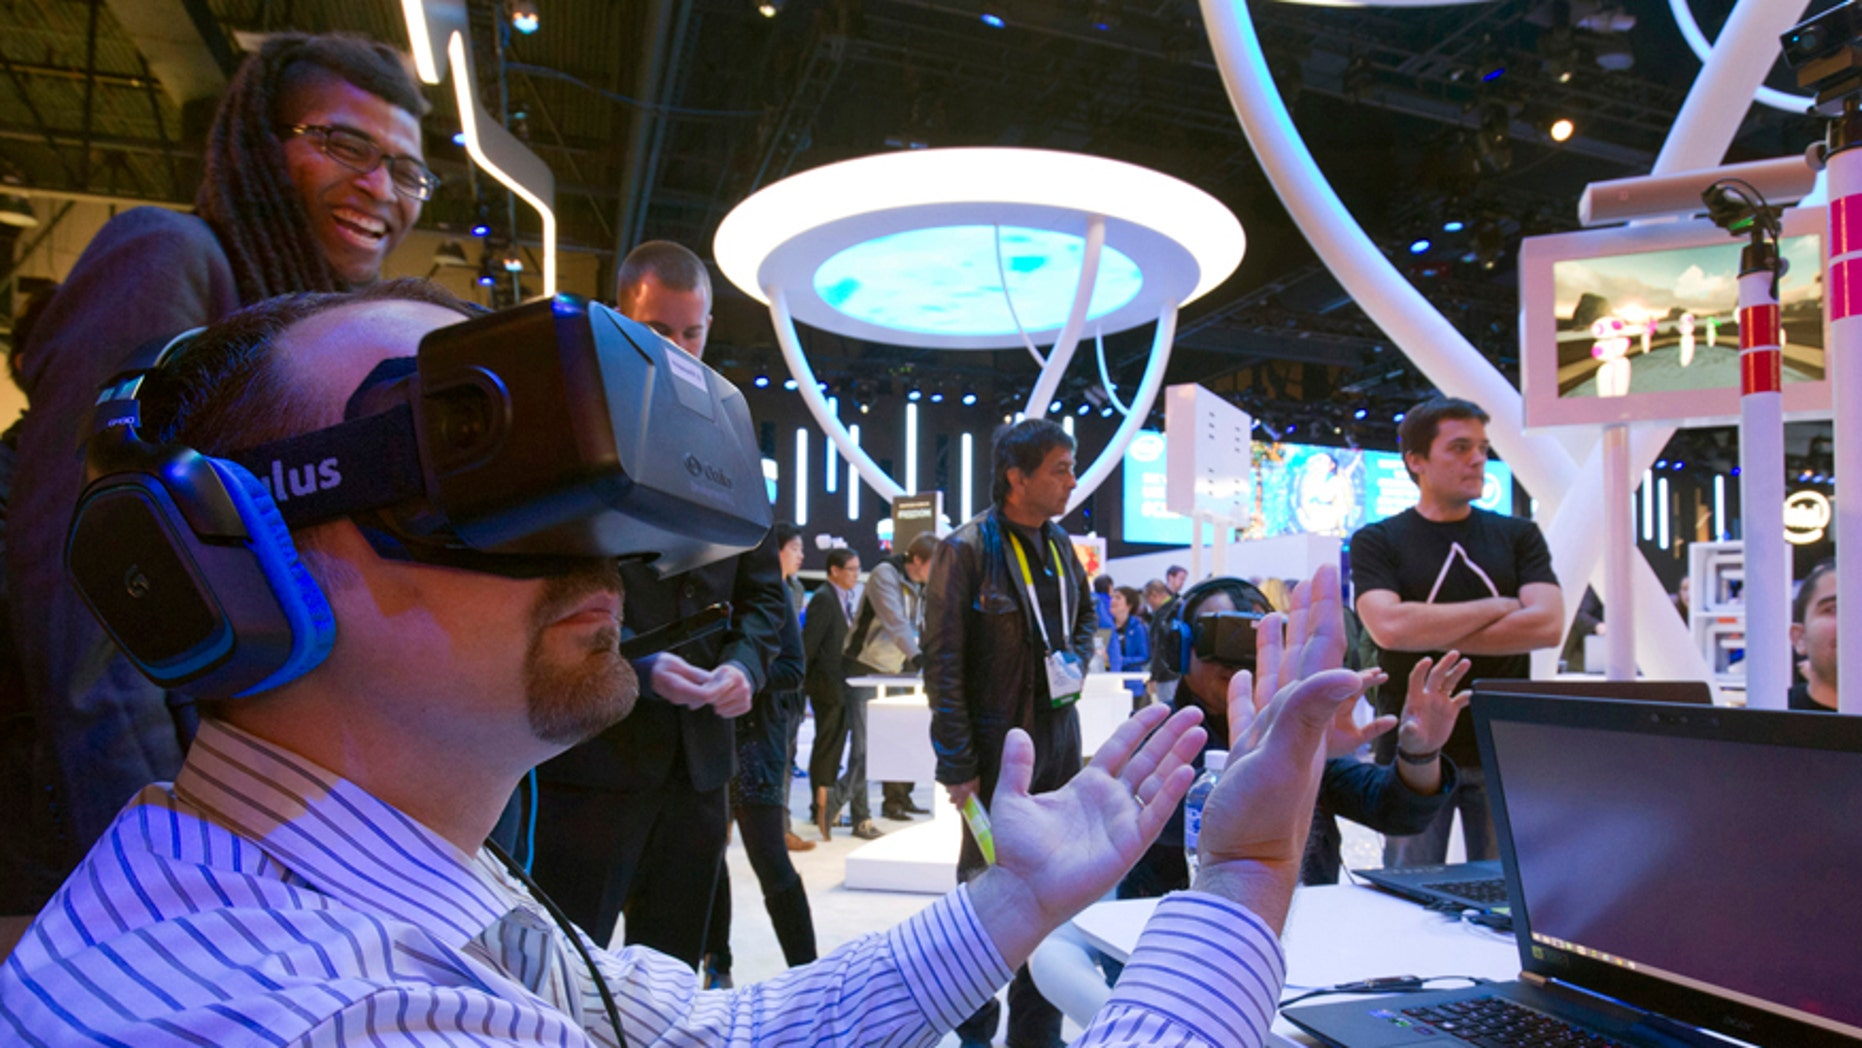 File photo - An attendee wearing an Oculus Rift virtual reality headset plays in a virtual volleyball game at the Intel booth during the 2015 International Consumer Electronics Show (CES) in Las Vegas, Nevada Jan. 6, 2015.